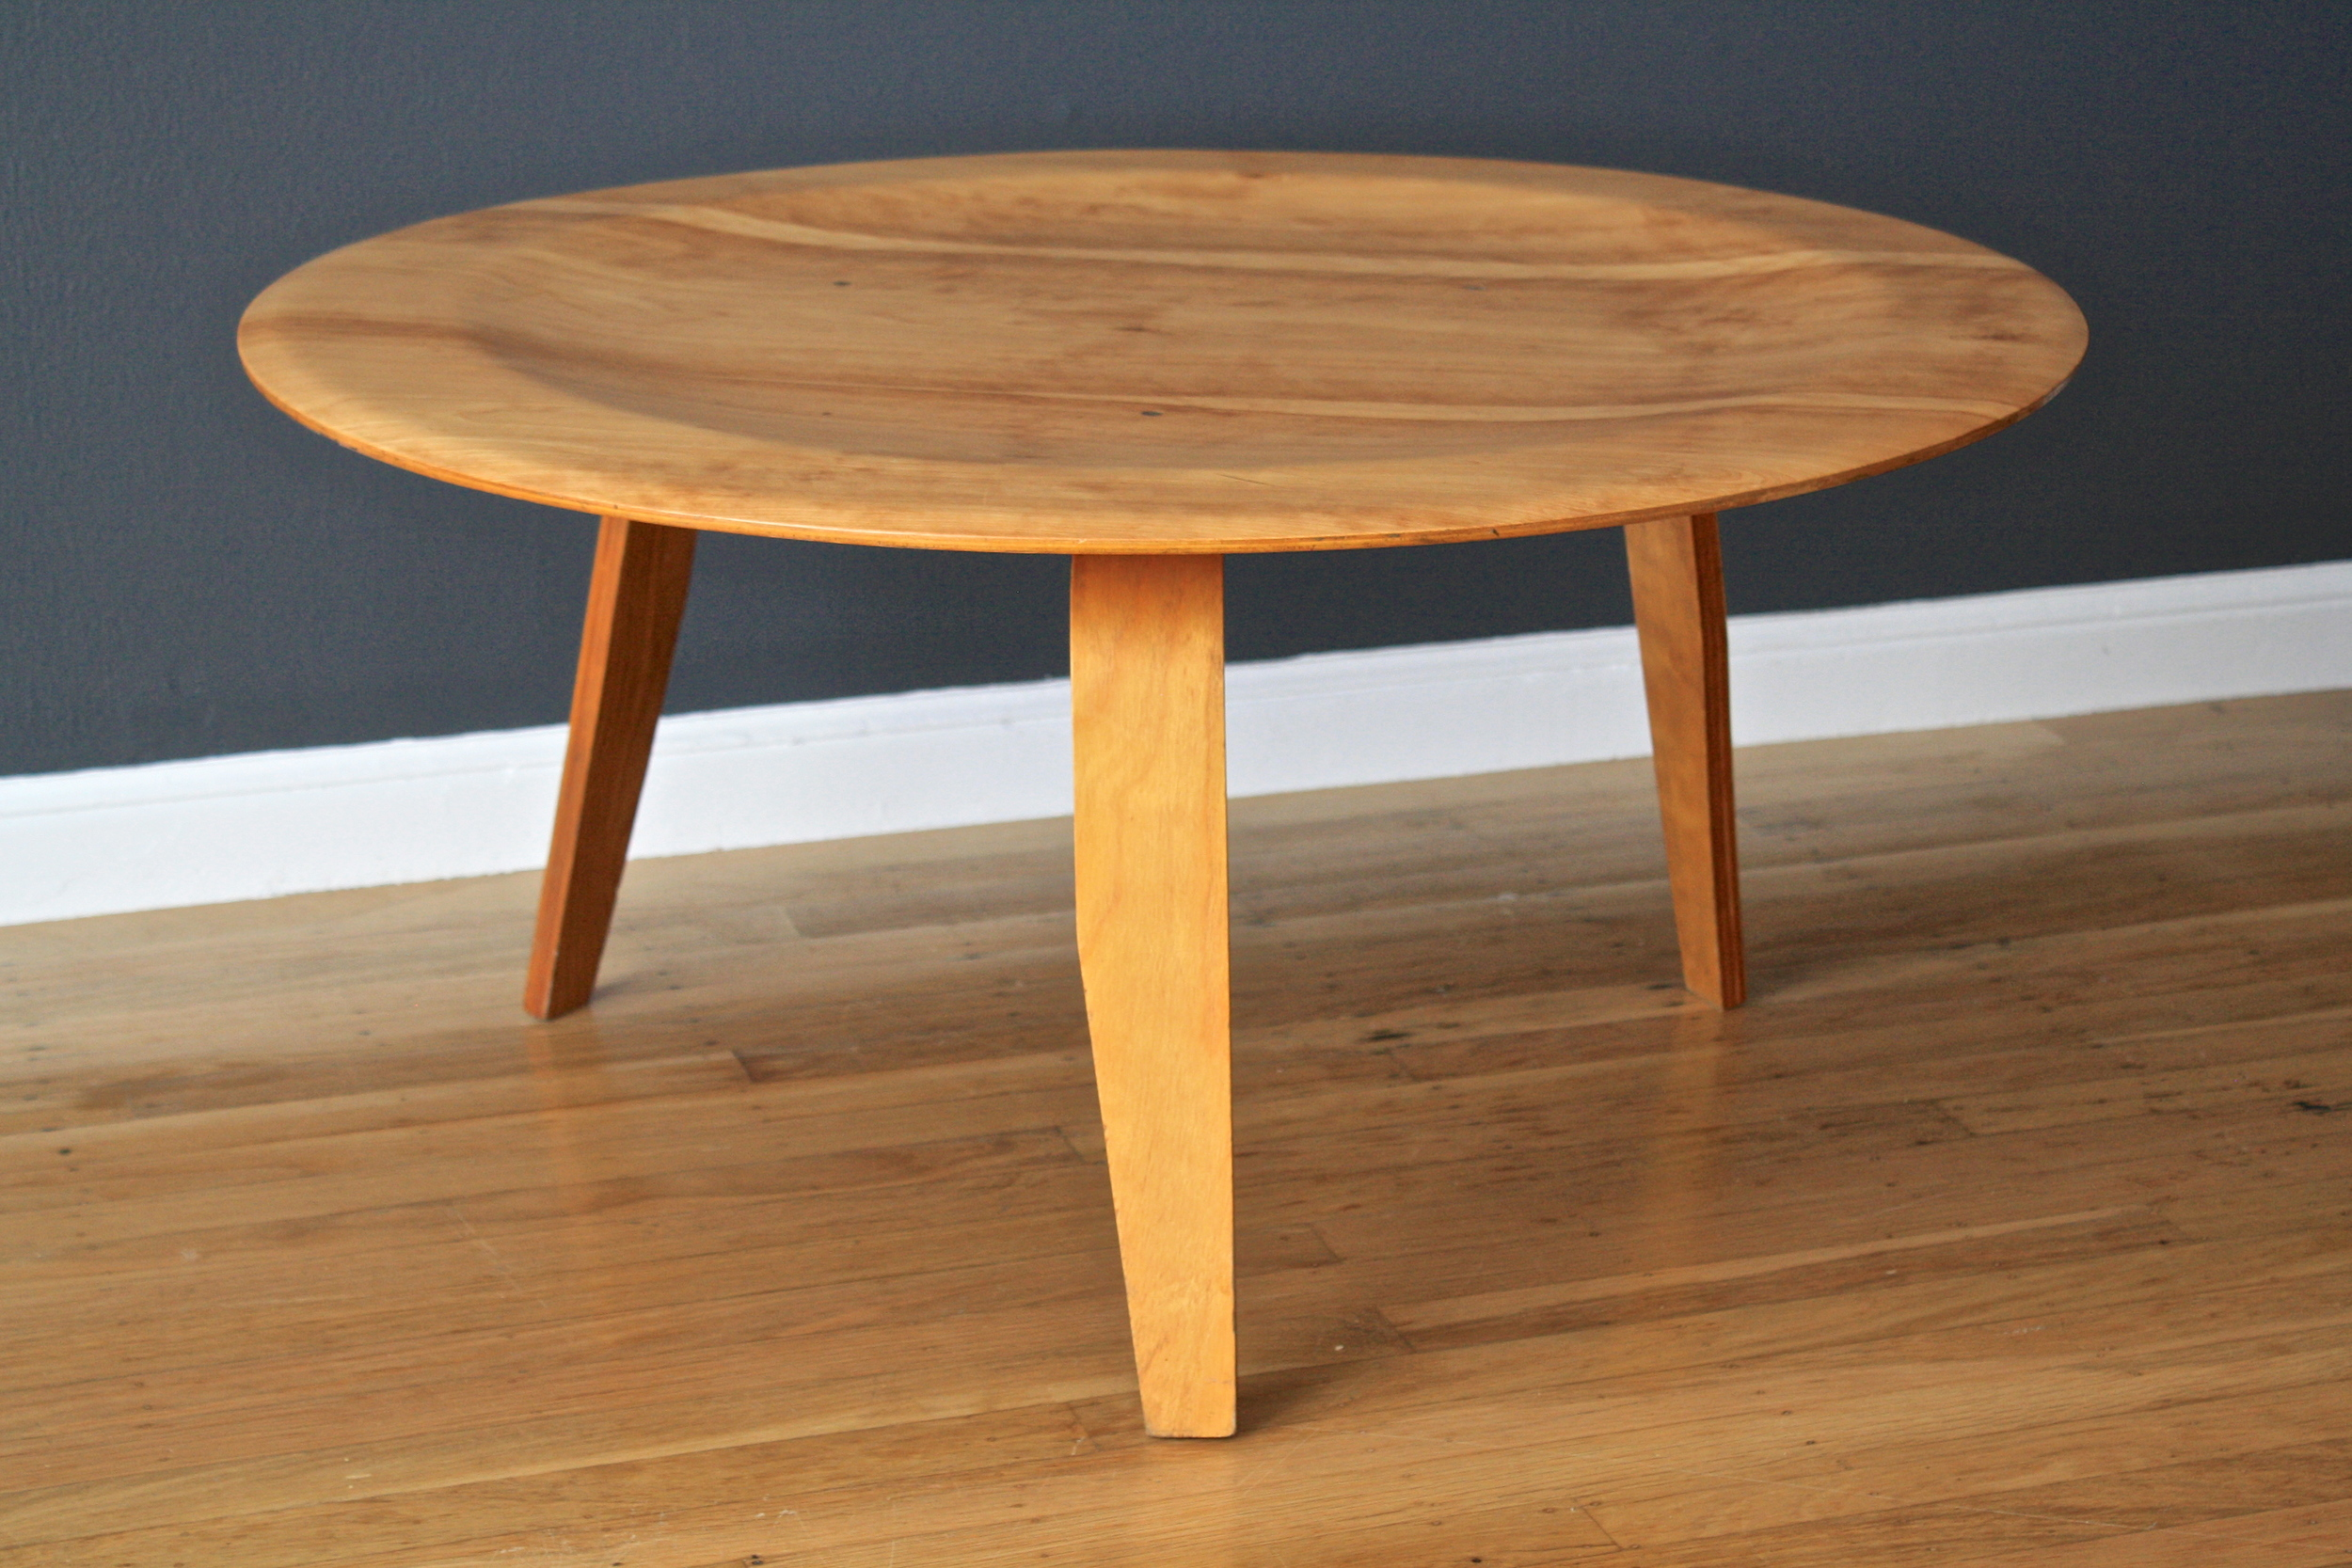 Copy of Vintage Mid-Century Eames Style Coffee Table